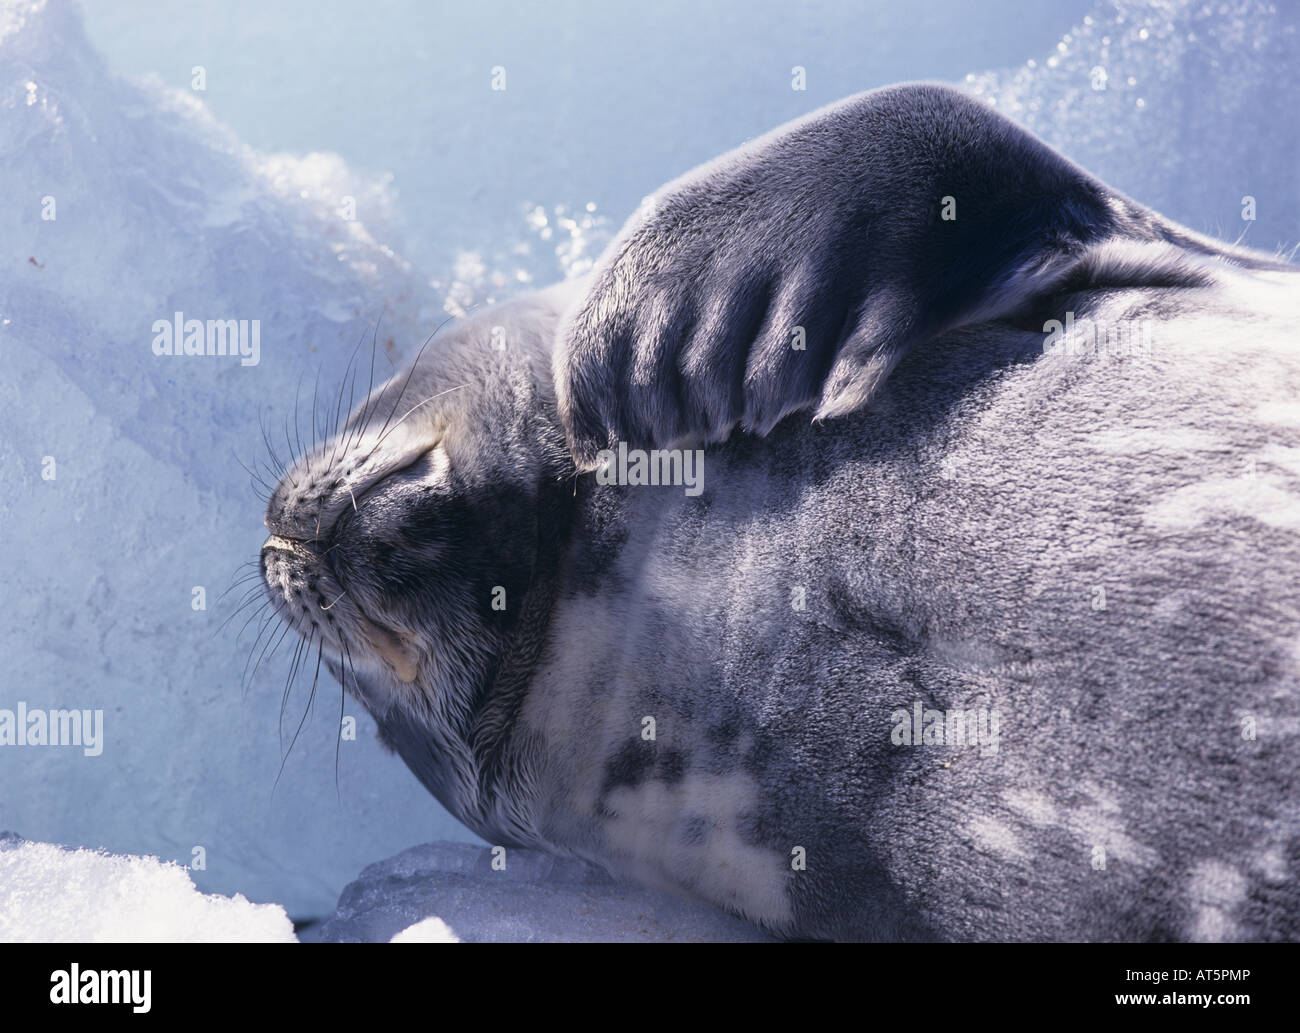 zoology / animals, mammal / mammalian, seals, , Additional-Rights-Clearance-Info-Not-Available - Stock Image